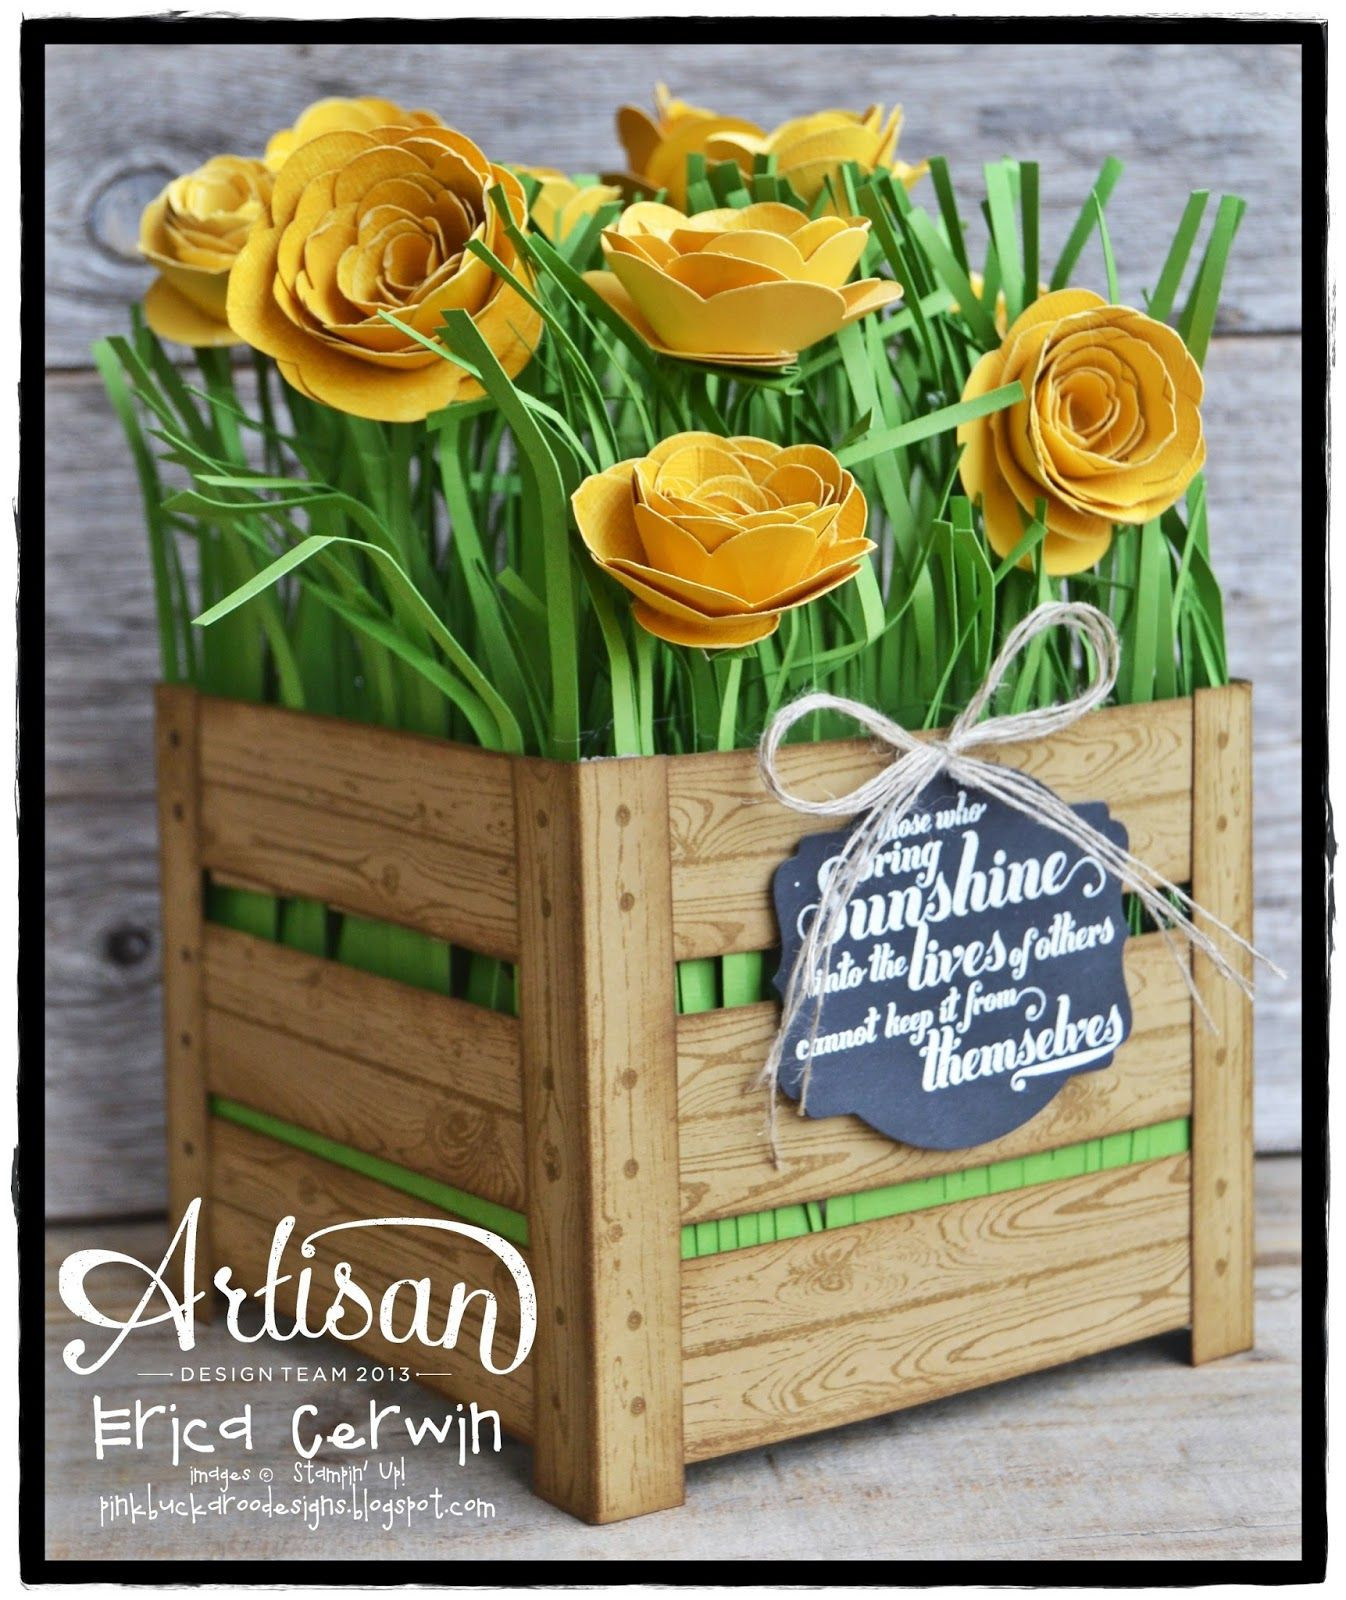 Amazing Flower Crate created by Artisan Design Team member Erica Cerwin using the Stampin Up Spiral Flower Die and woodgrain background stamp